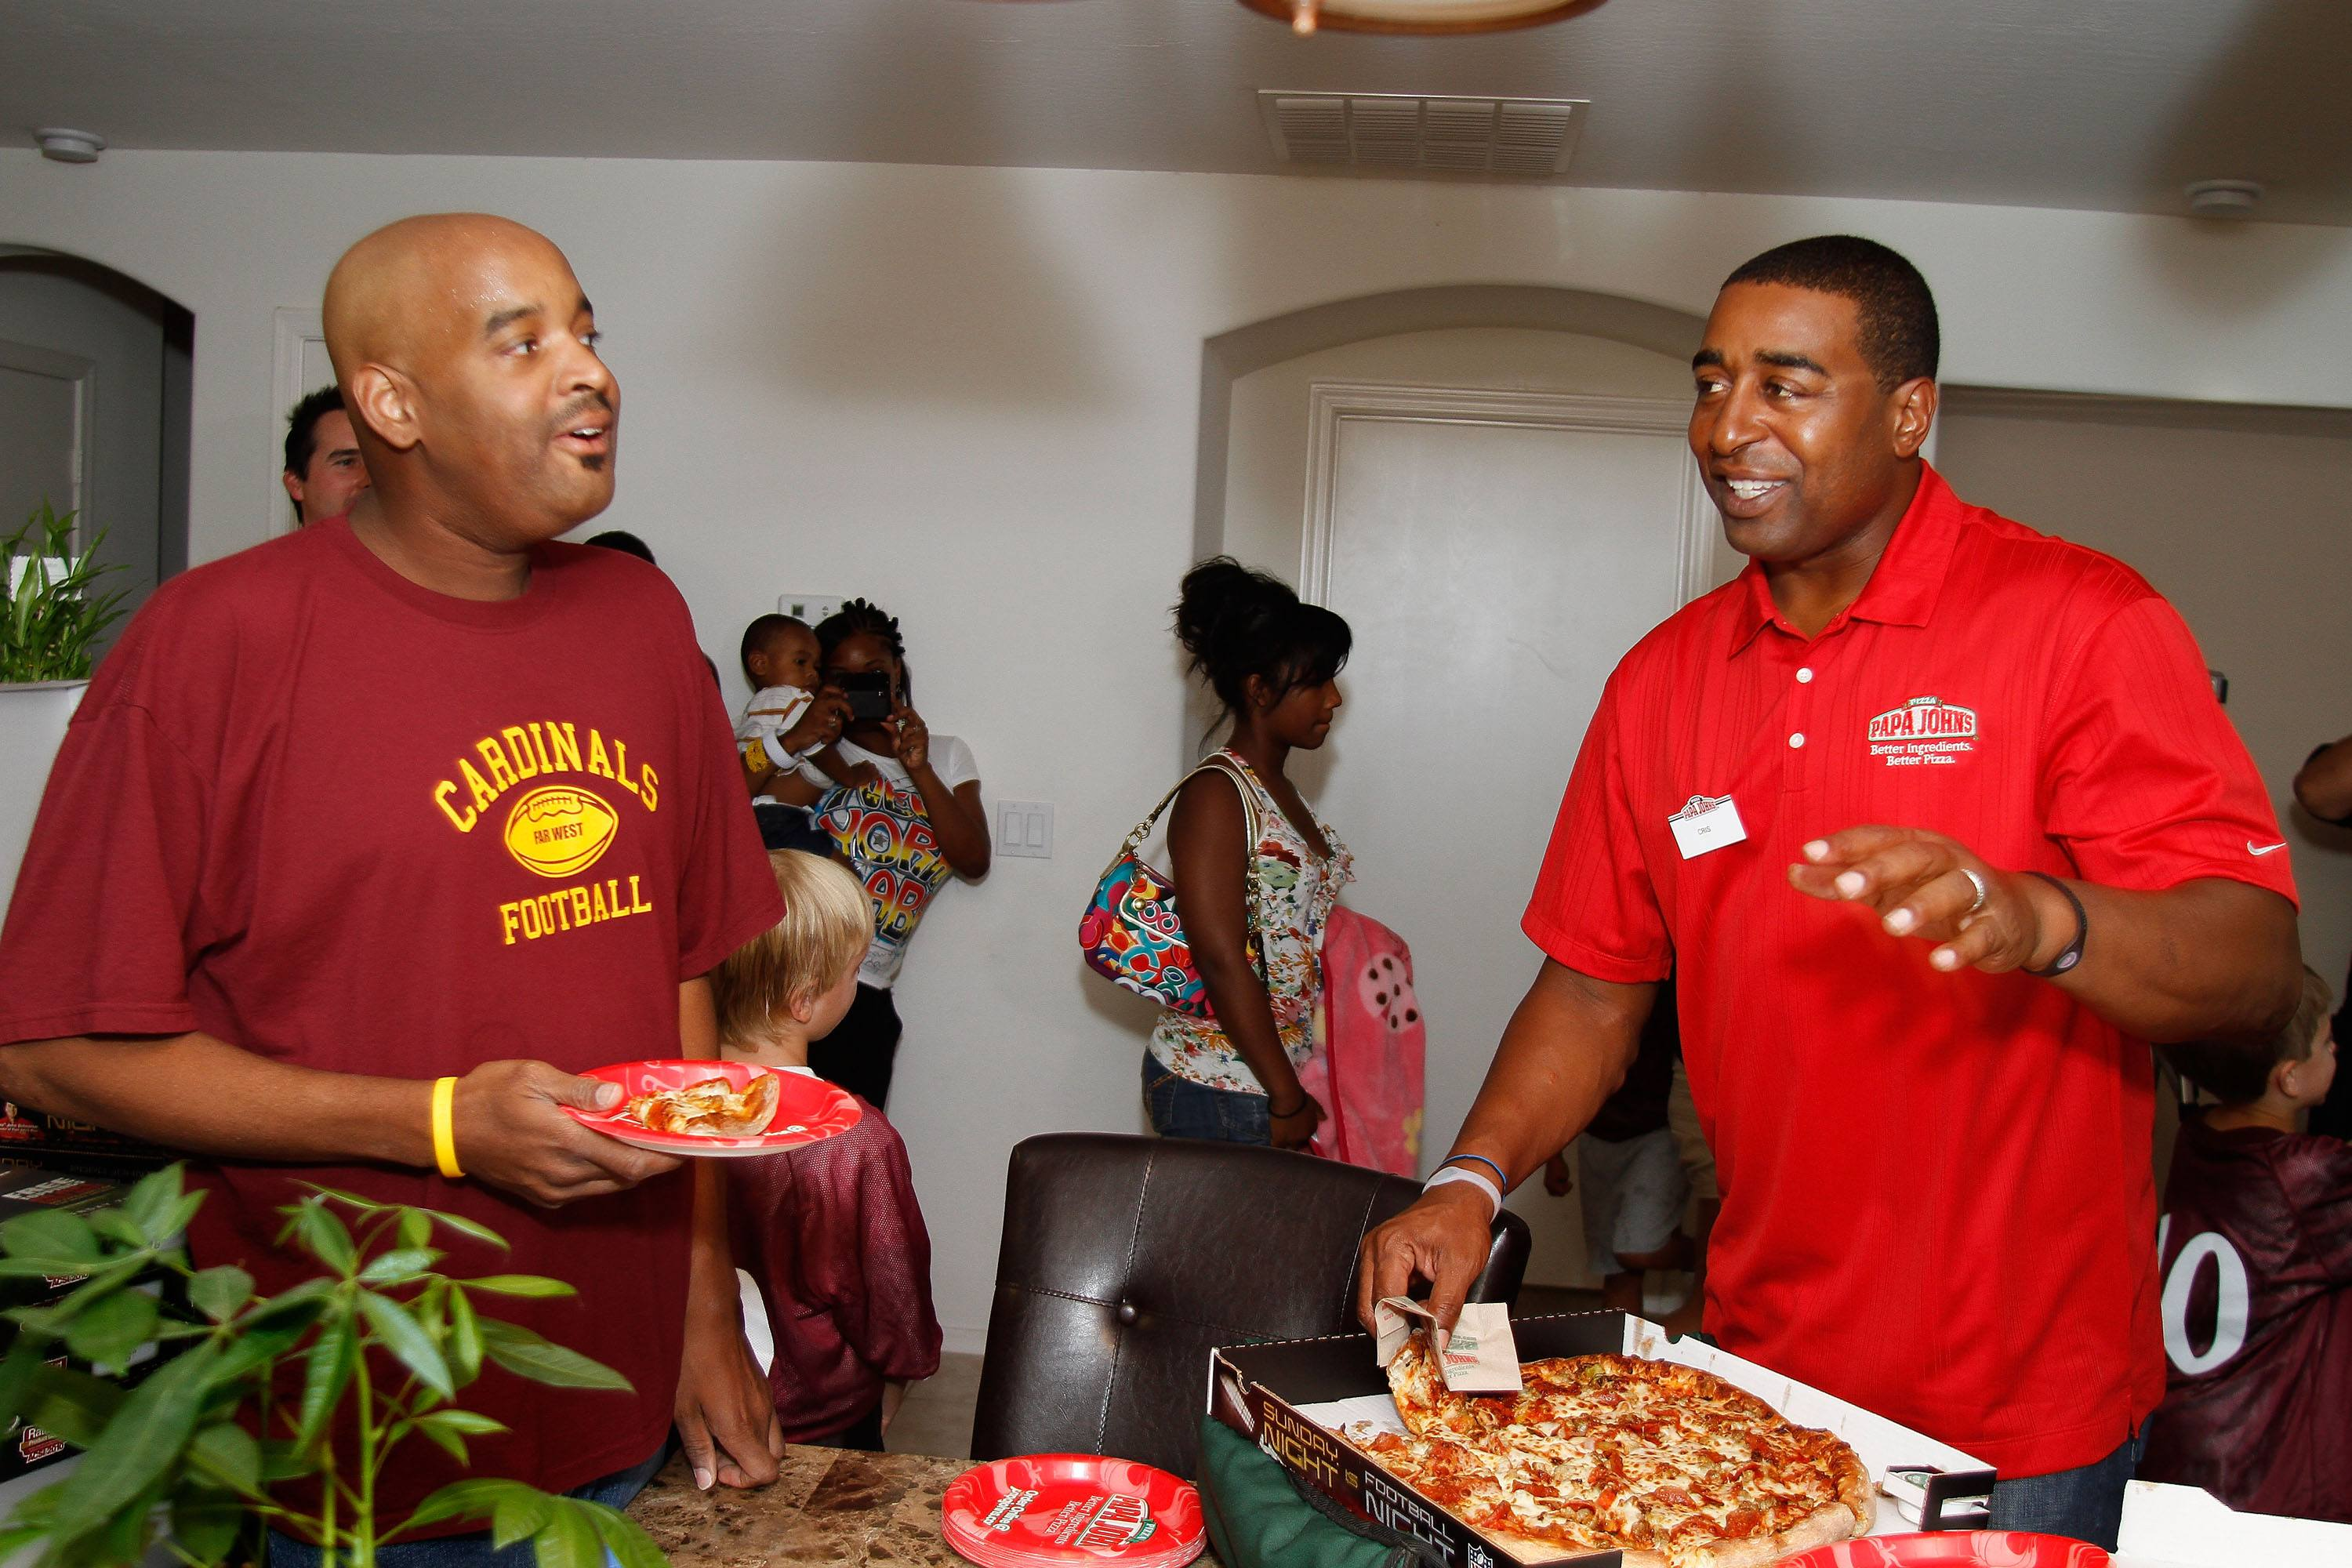 Papa Johns contest winner Anthony Green and Former NFL Star Cris Carter watch the NFL kickoff game on September 9, 2010 in Phoenix, Arizona.